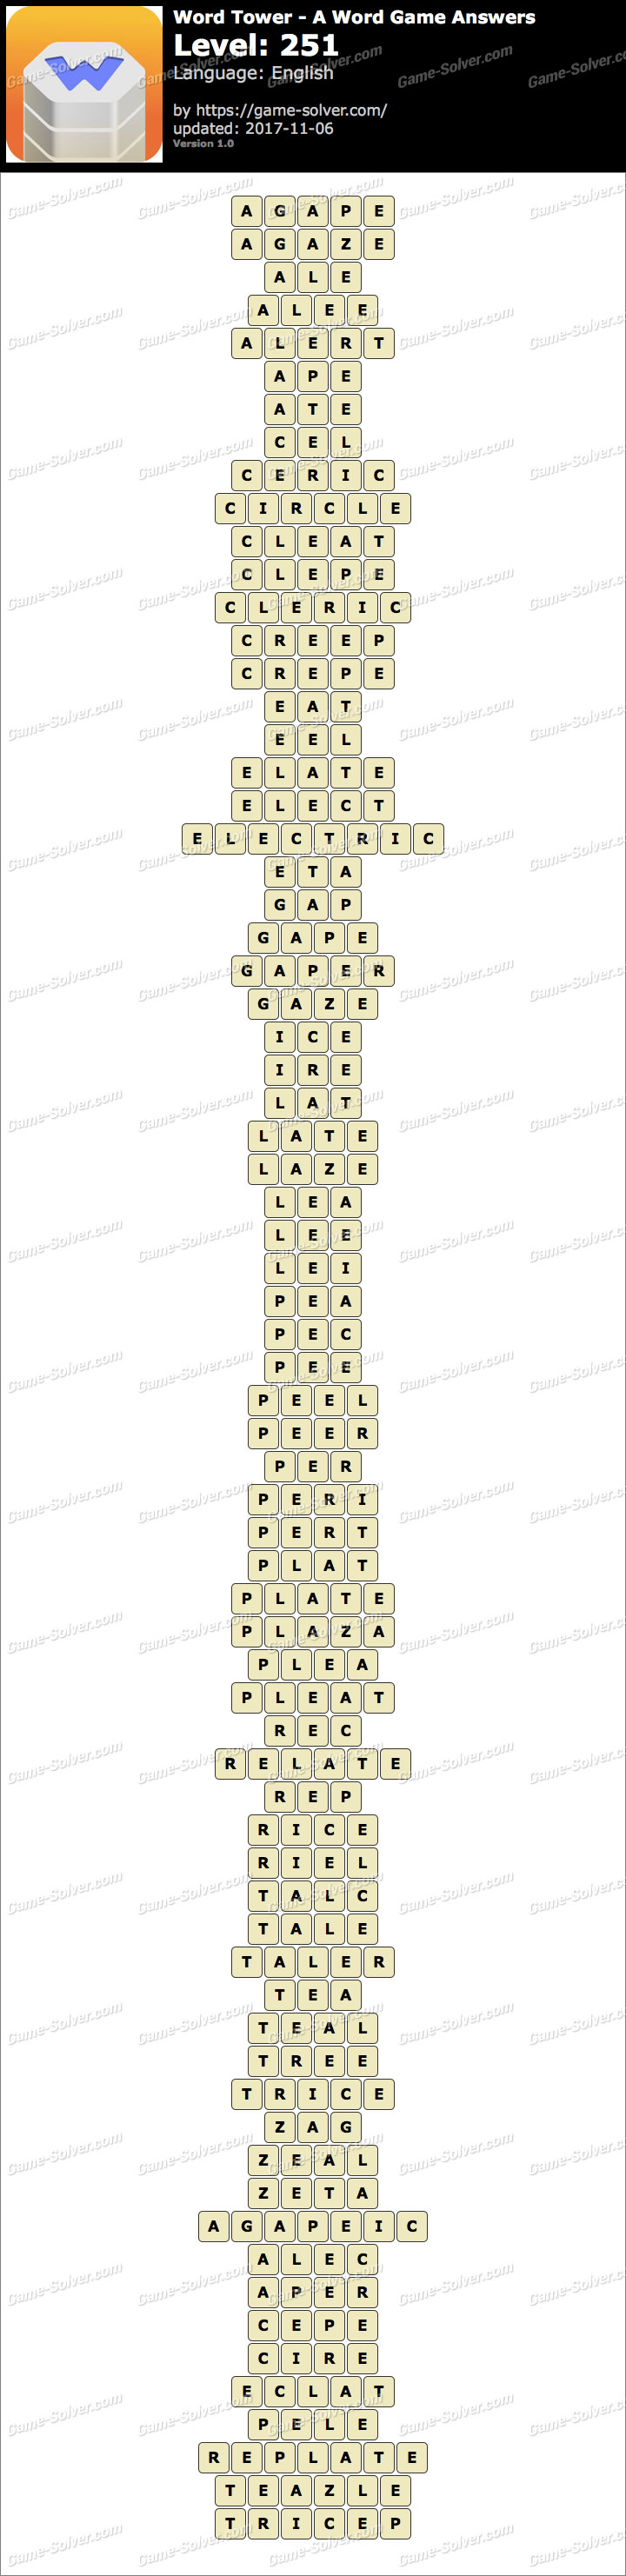 Word Tower Level 251 Answers